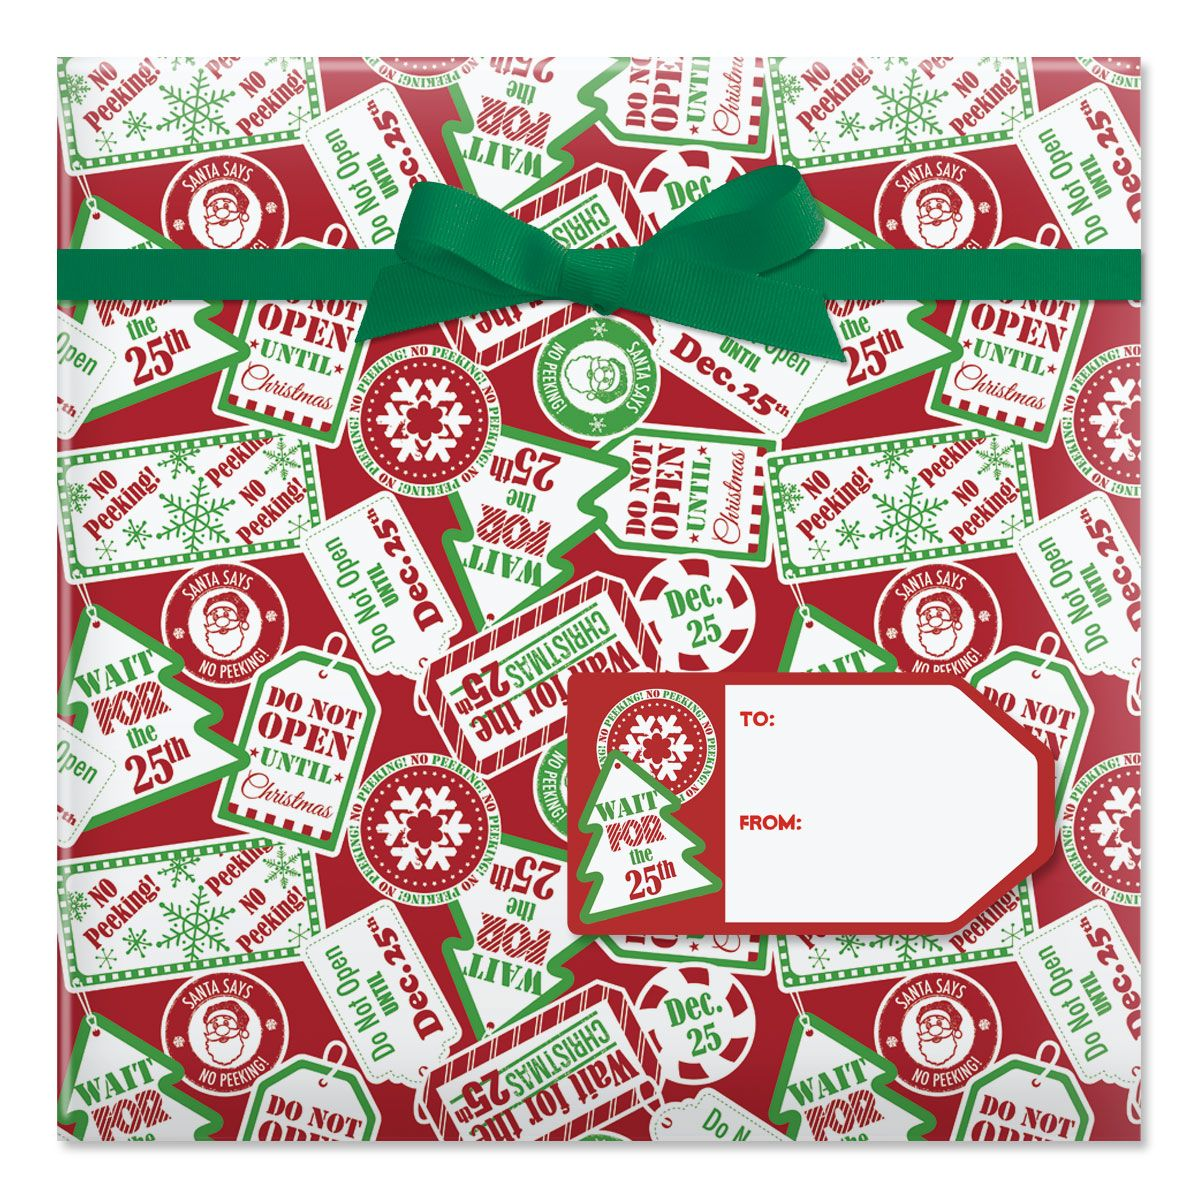 Do Not Open Until Christmas Jumbo Rolled Gift Wrap | Current Catalog